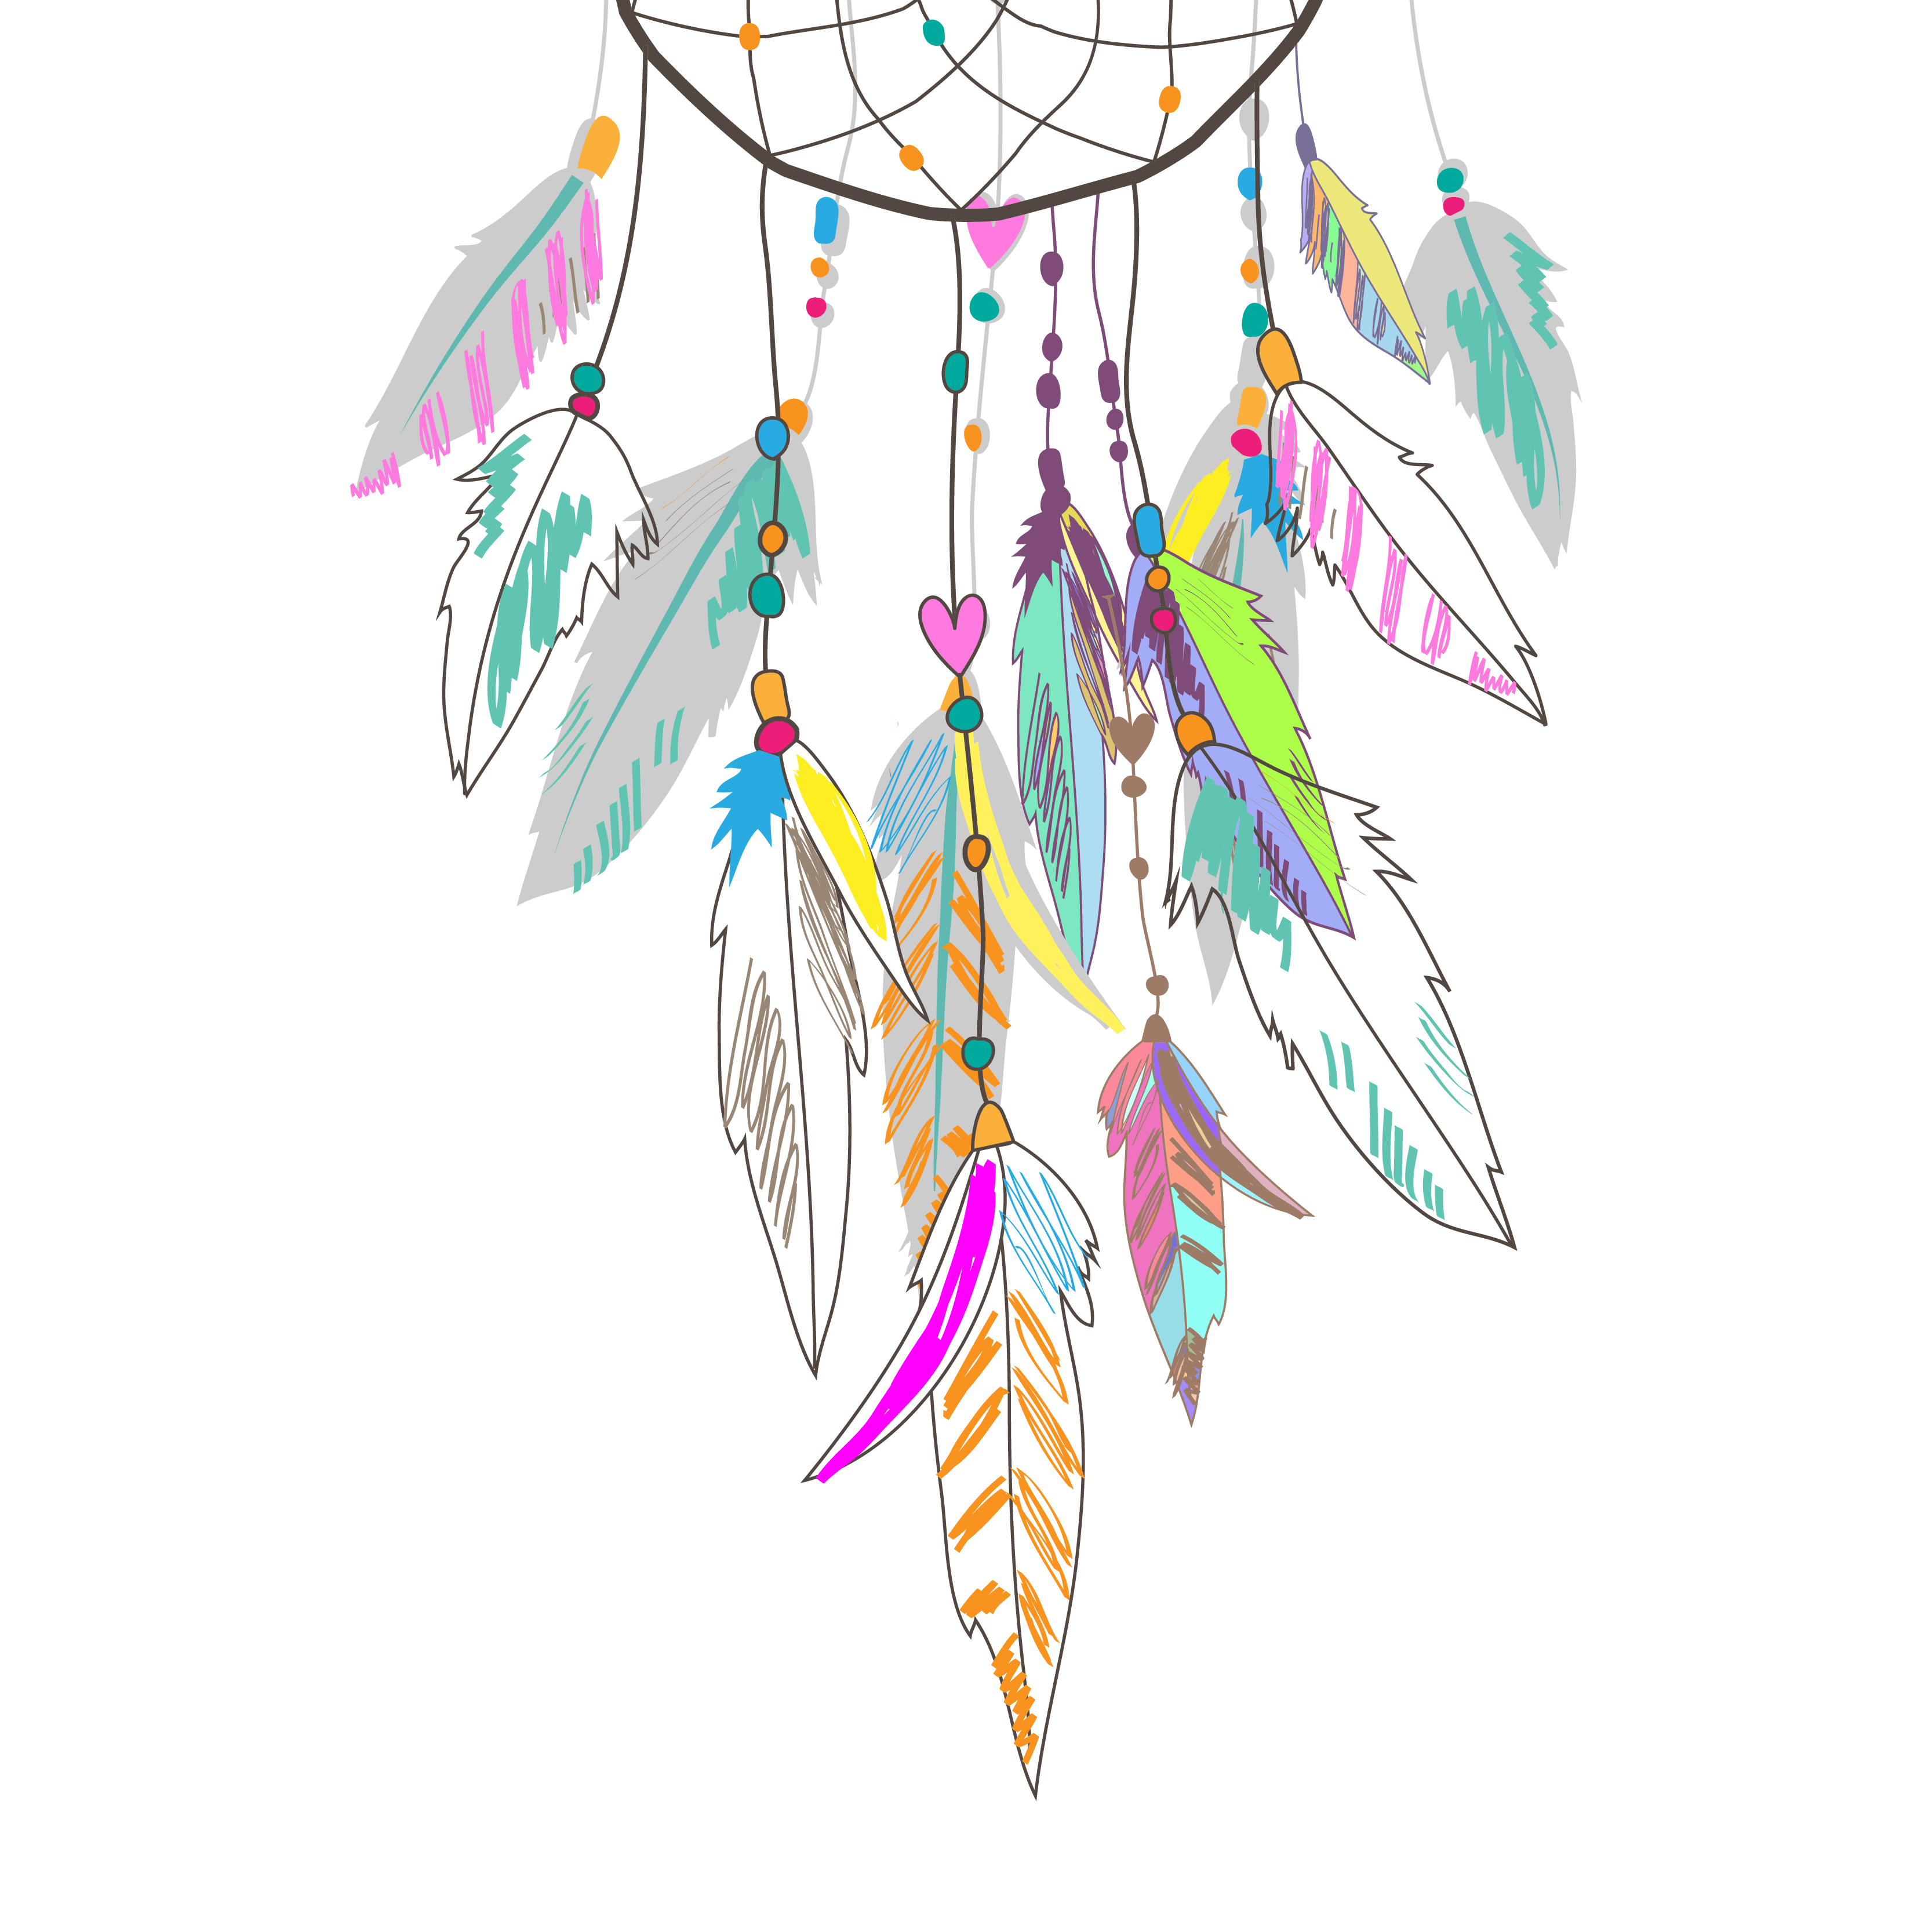 Dreamcatcher HQ Image Free PNG PNG Image